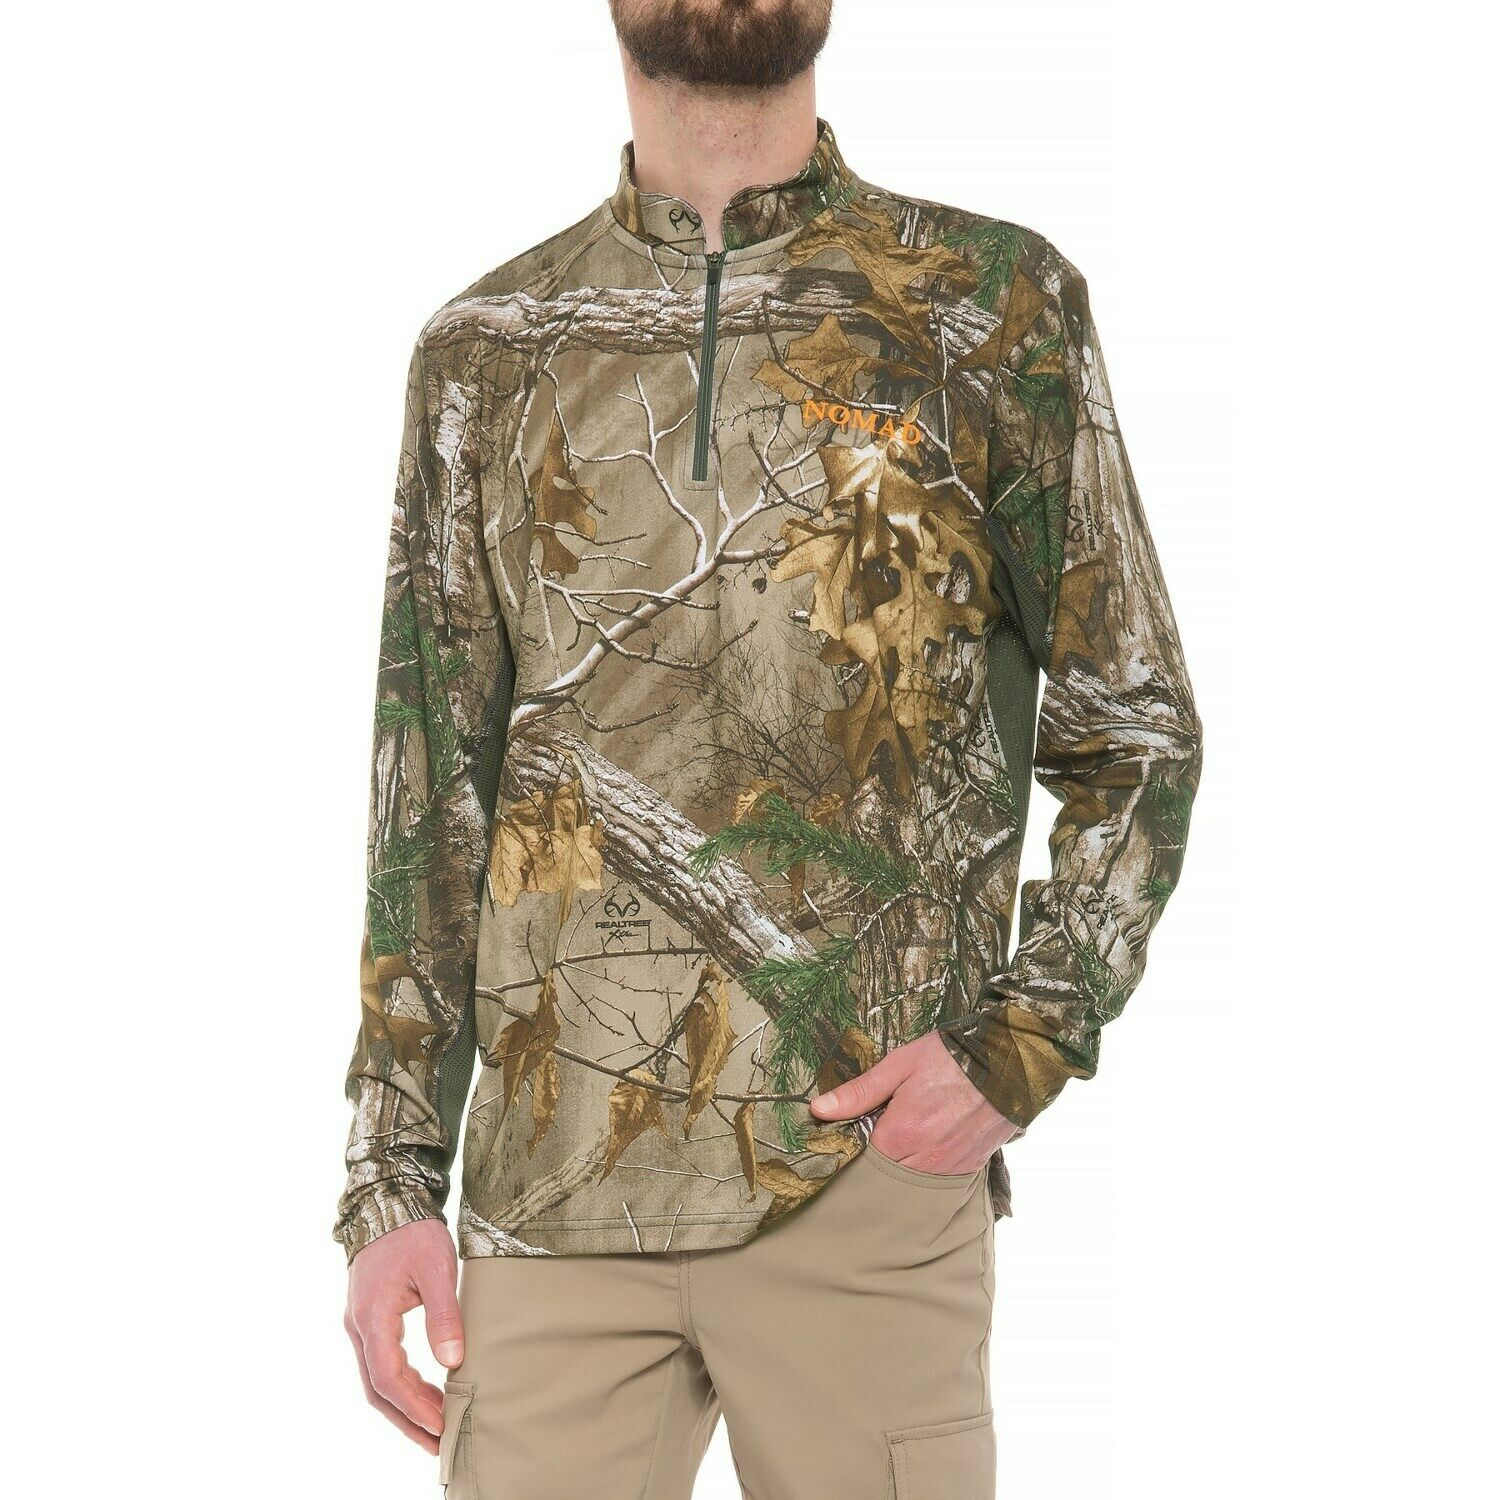 NOMAD 1 4 Zip - L S Breathable Base Layer Camo Suppression Shirt - Choose Size